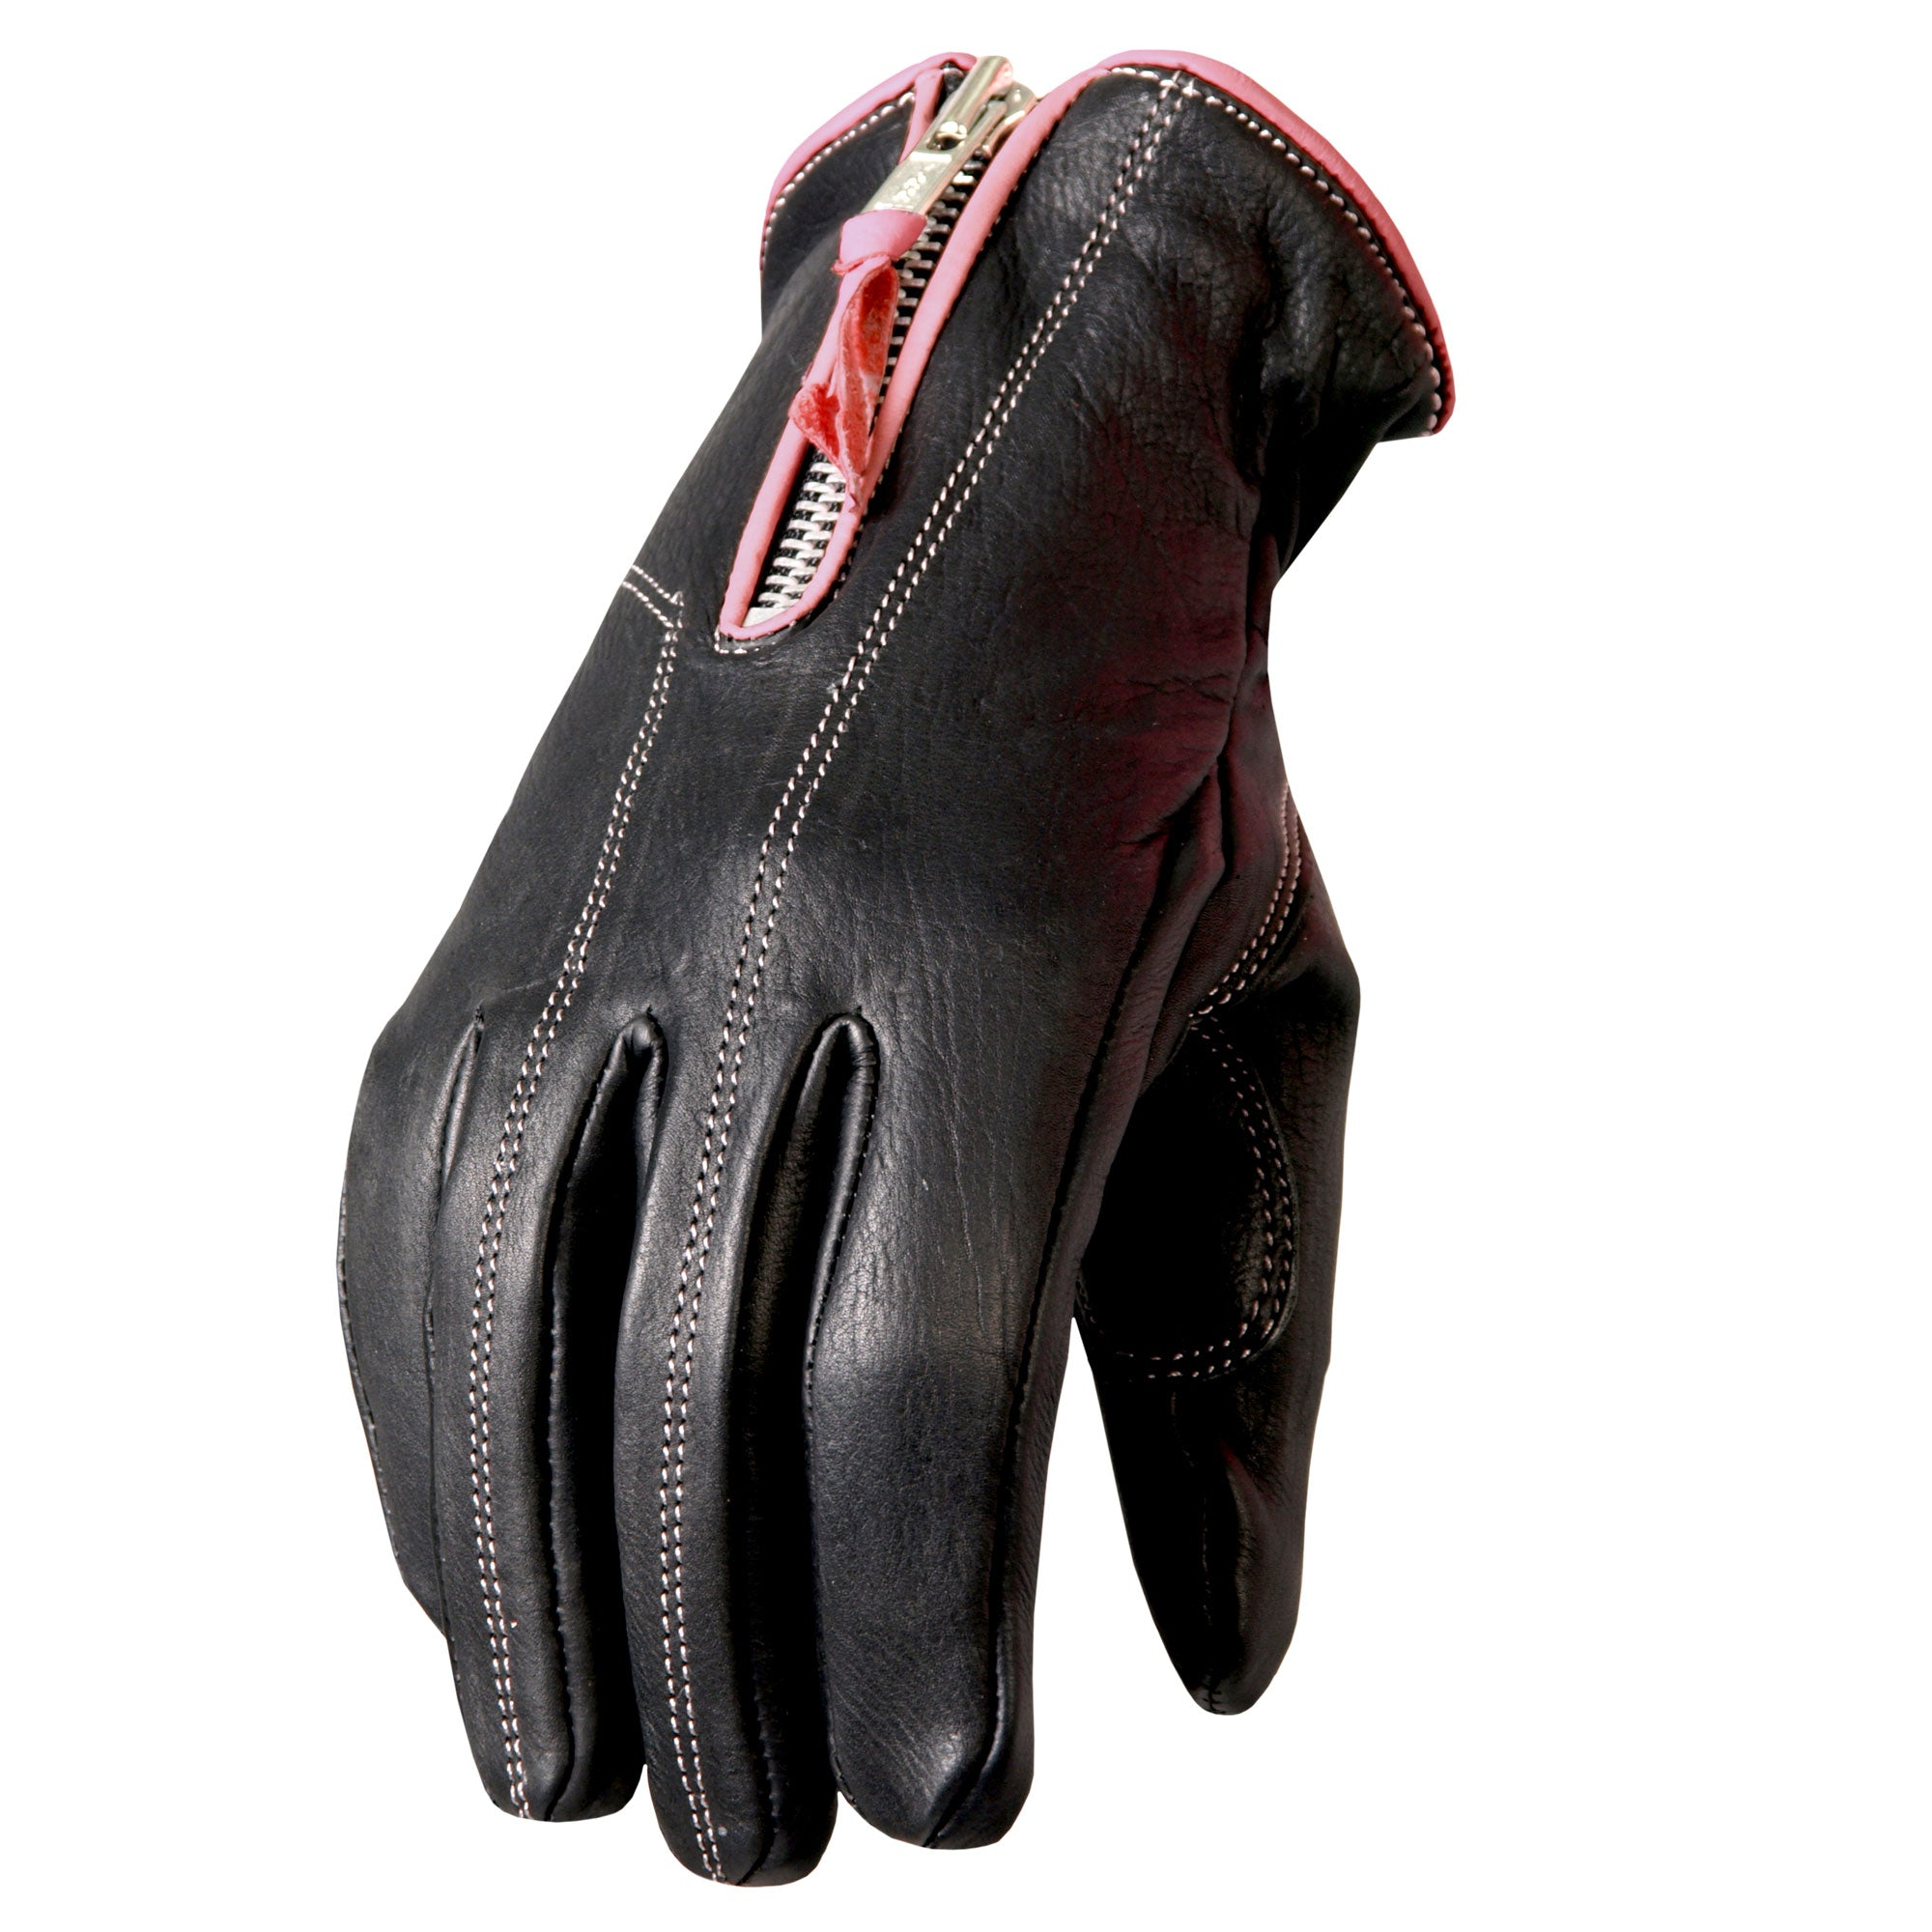 Hot Leathers GVL1009 Ladies Driving Gloves with Pink Piping